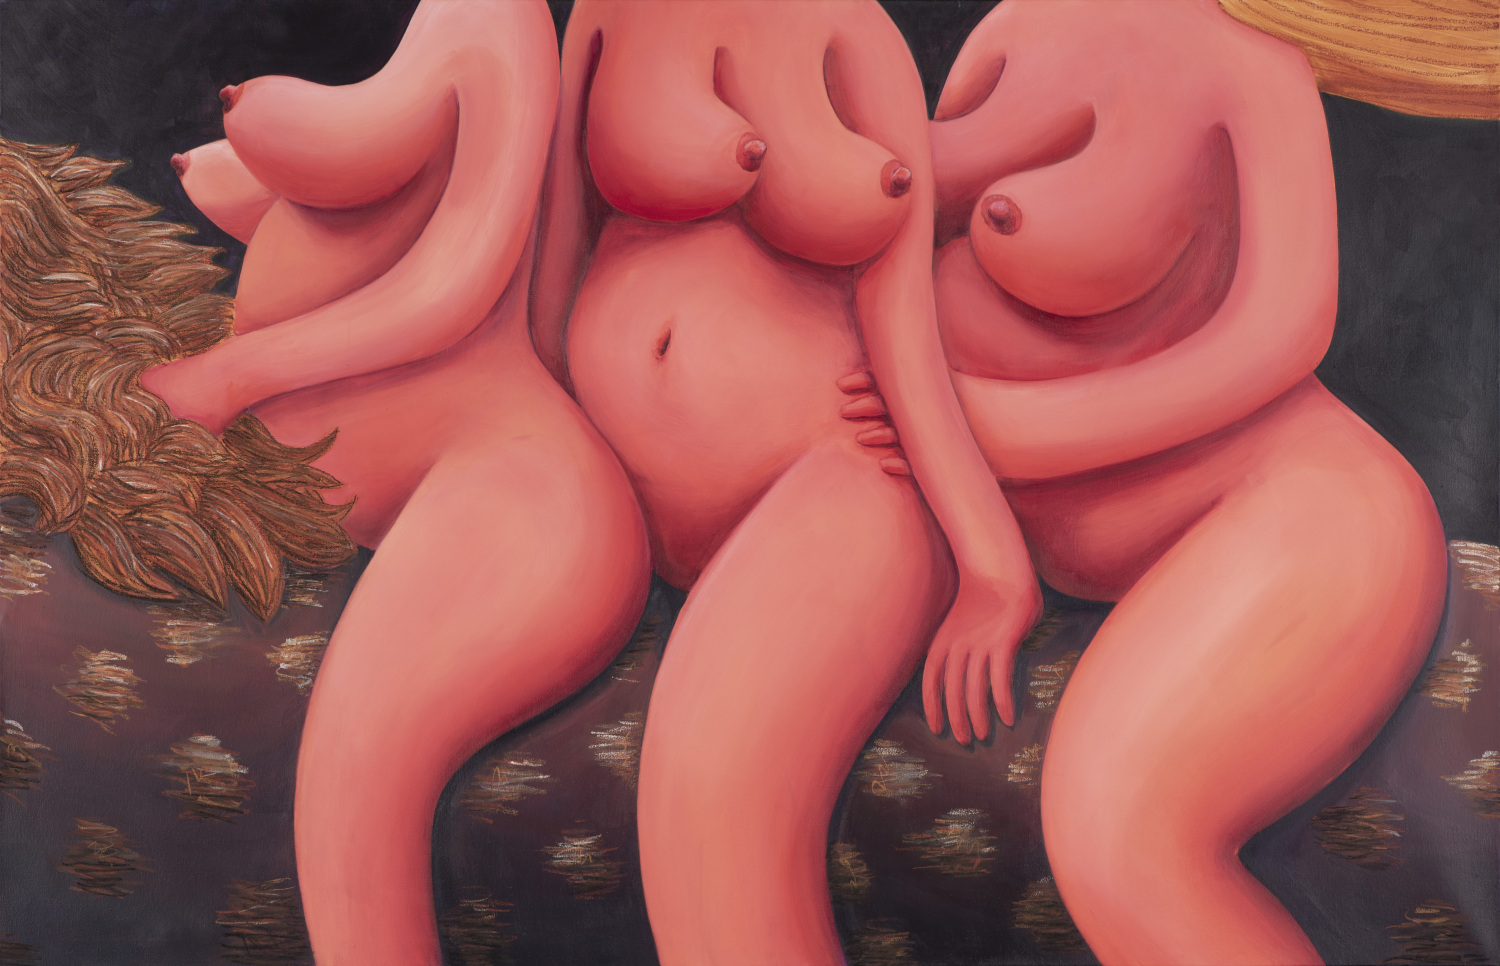 Tamara Malcher, The Three Graces, 2020, acrylic paint and pastels on canvas, 135 x 210 cm